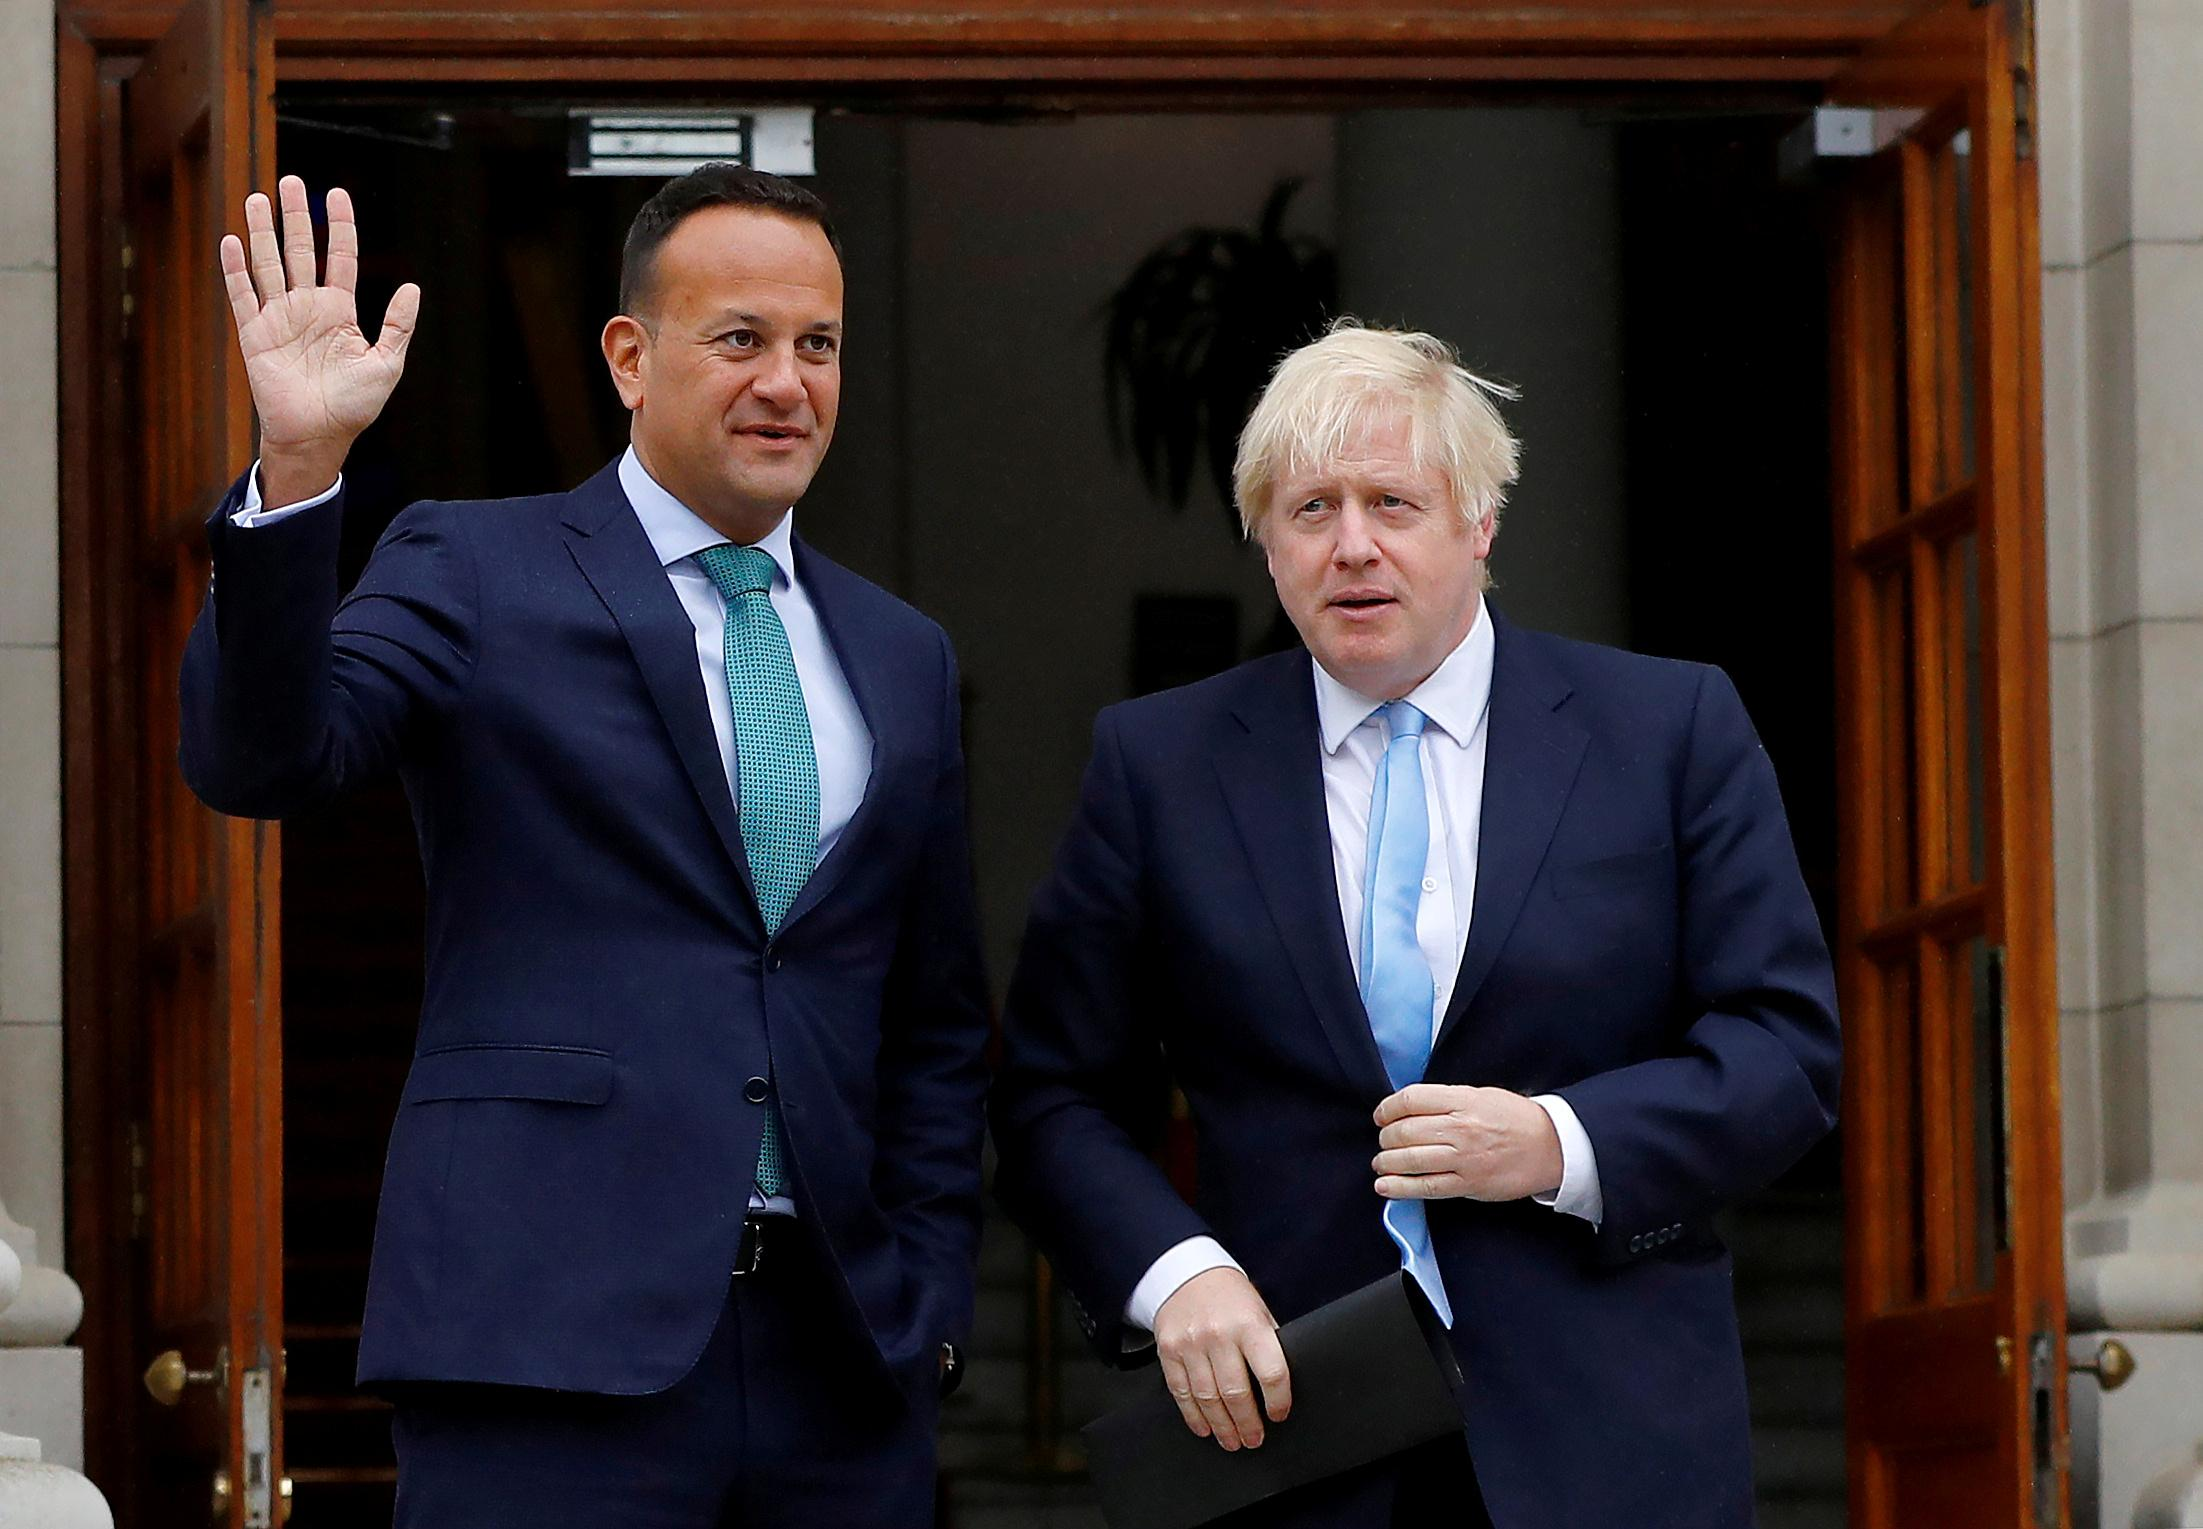 Irish PM says Brexit talks make progress and going in the right...